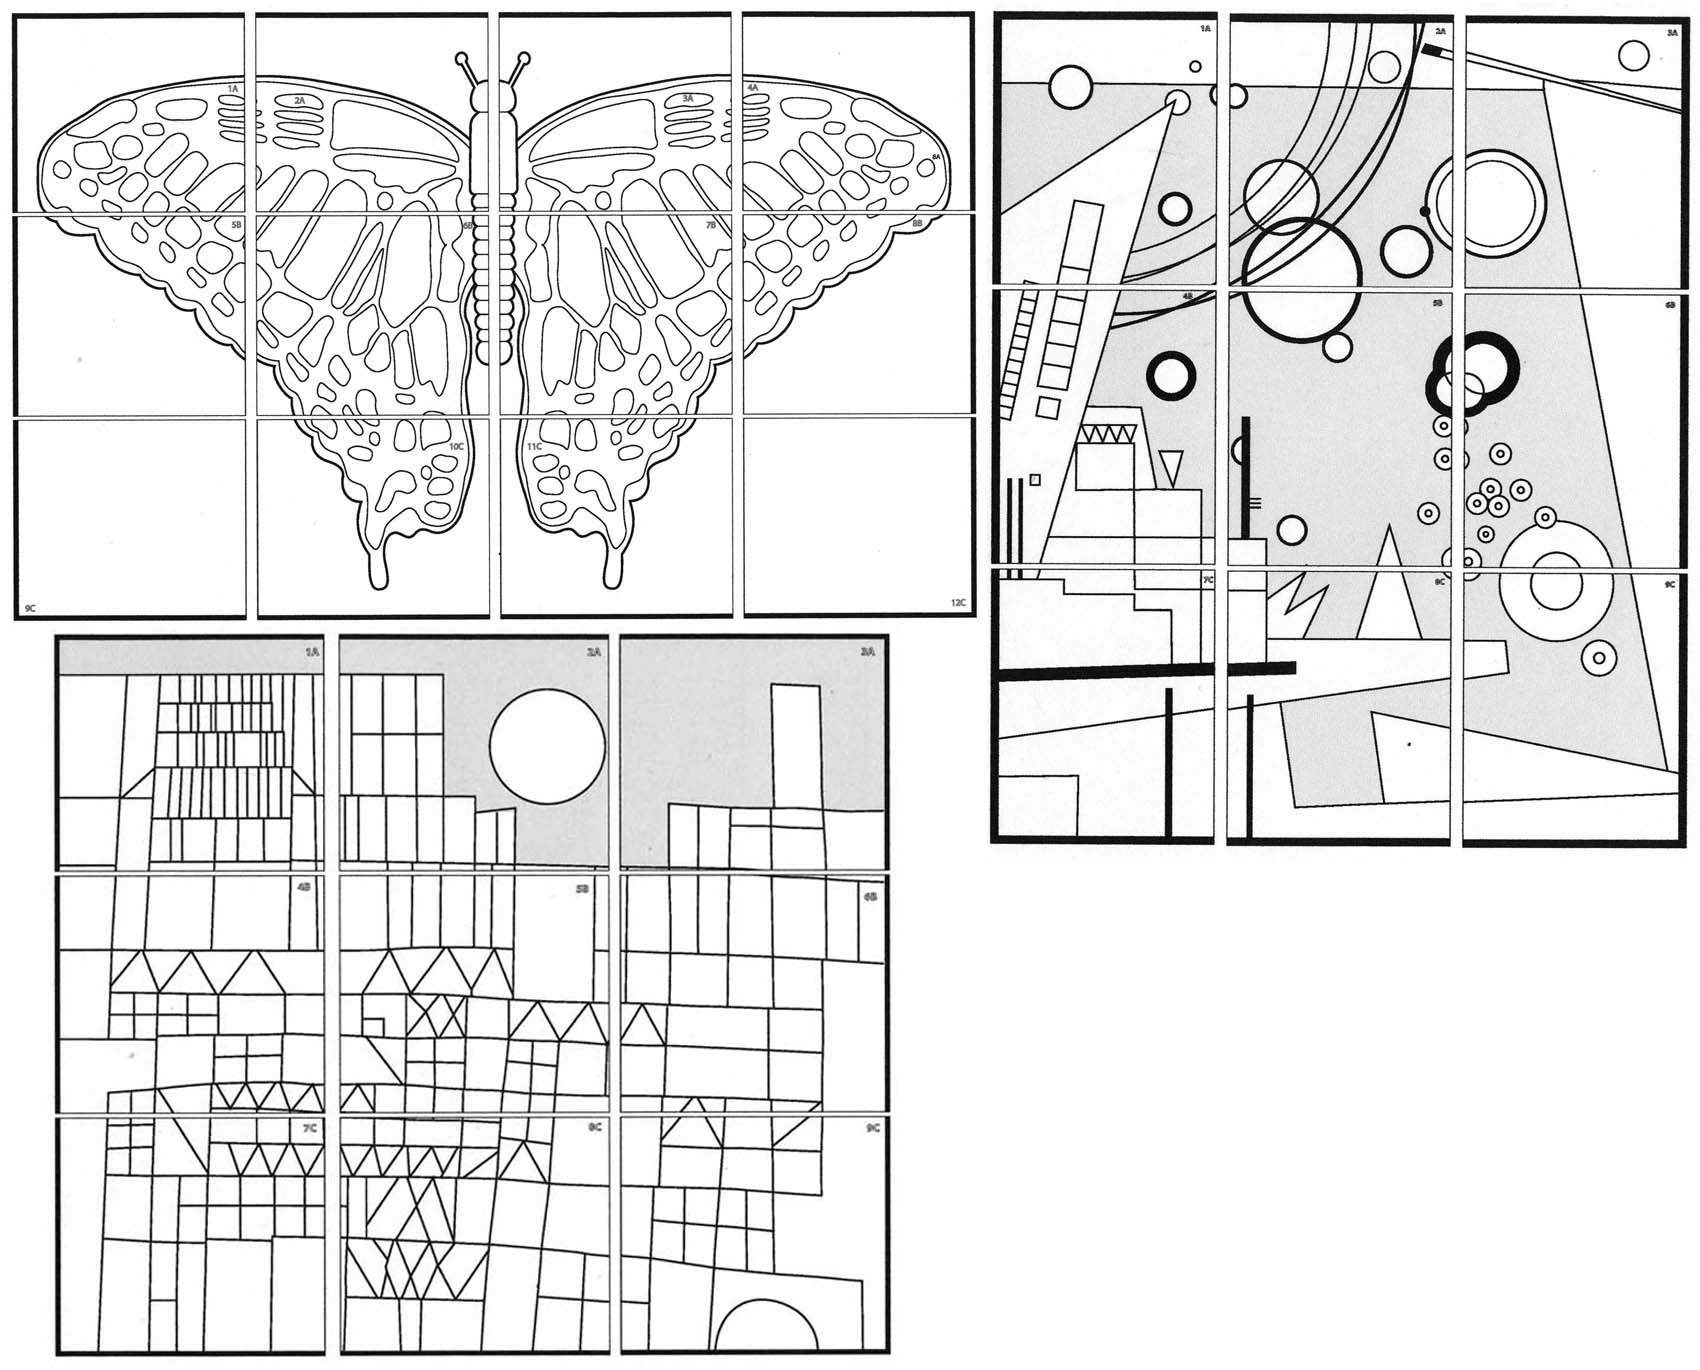 free coloring pages of mural diagram